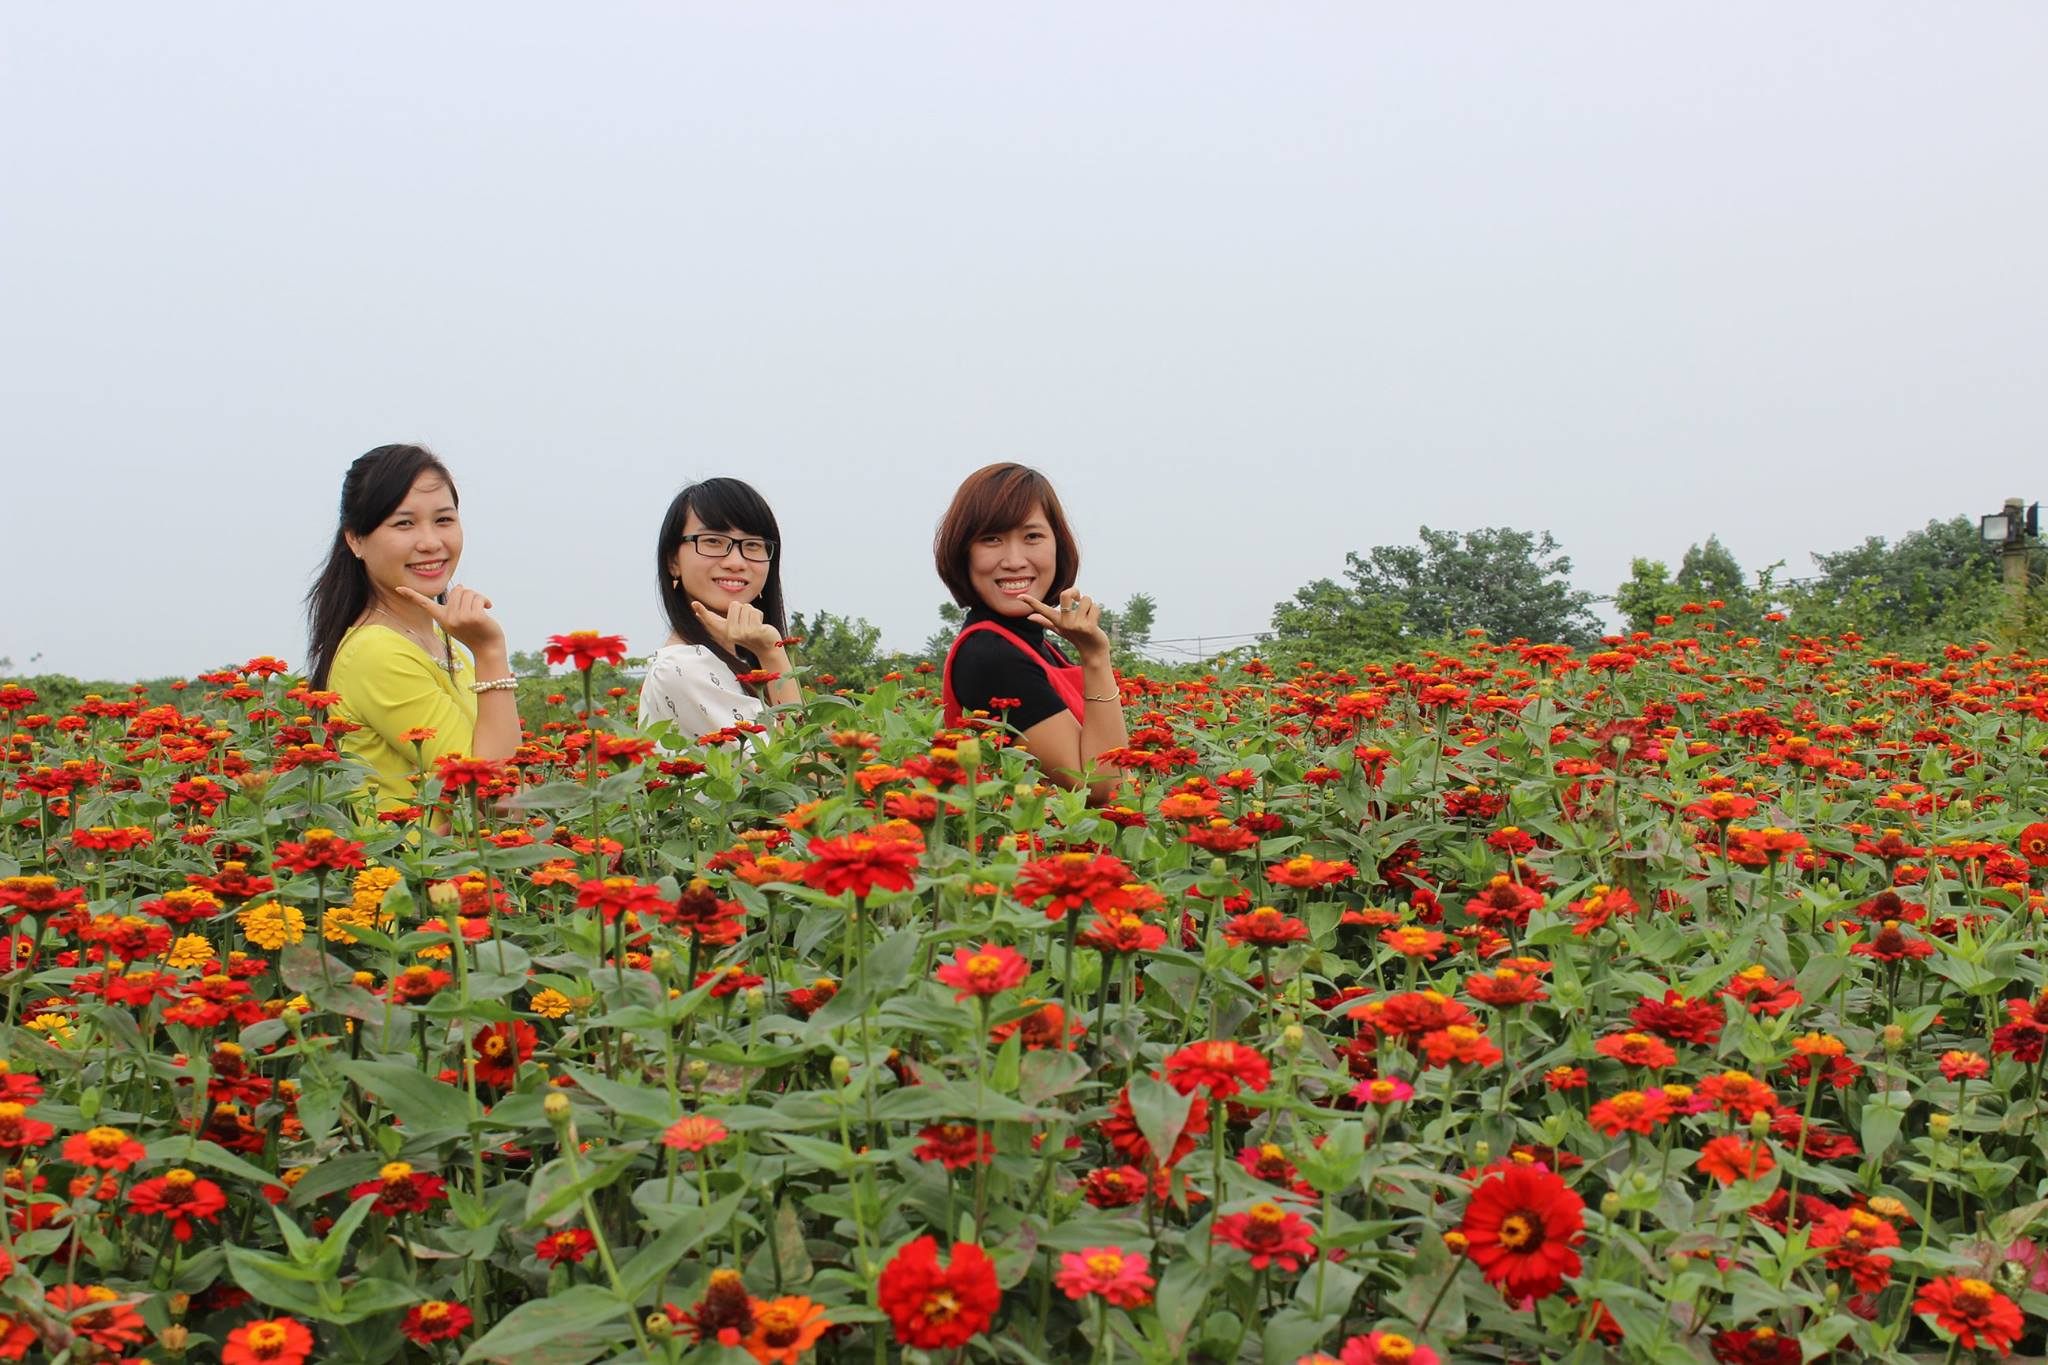 Flower Red River Ground Attracts A Lot Of Visitors  (3)